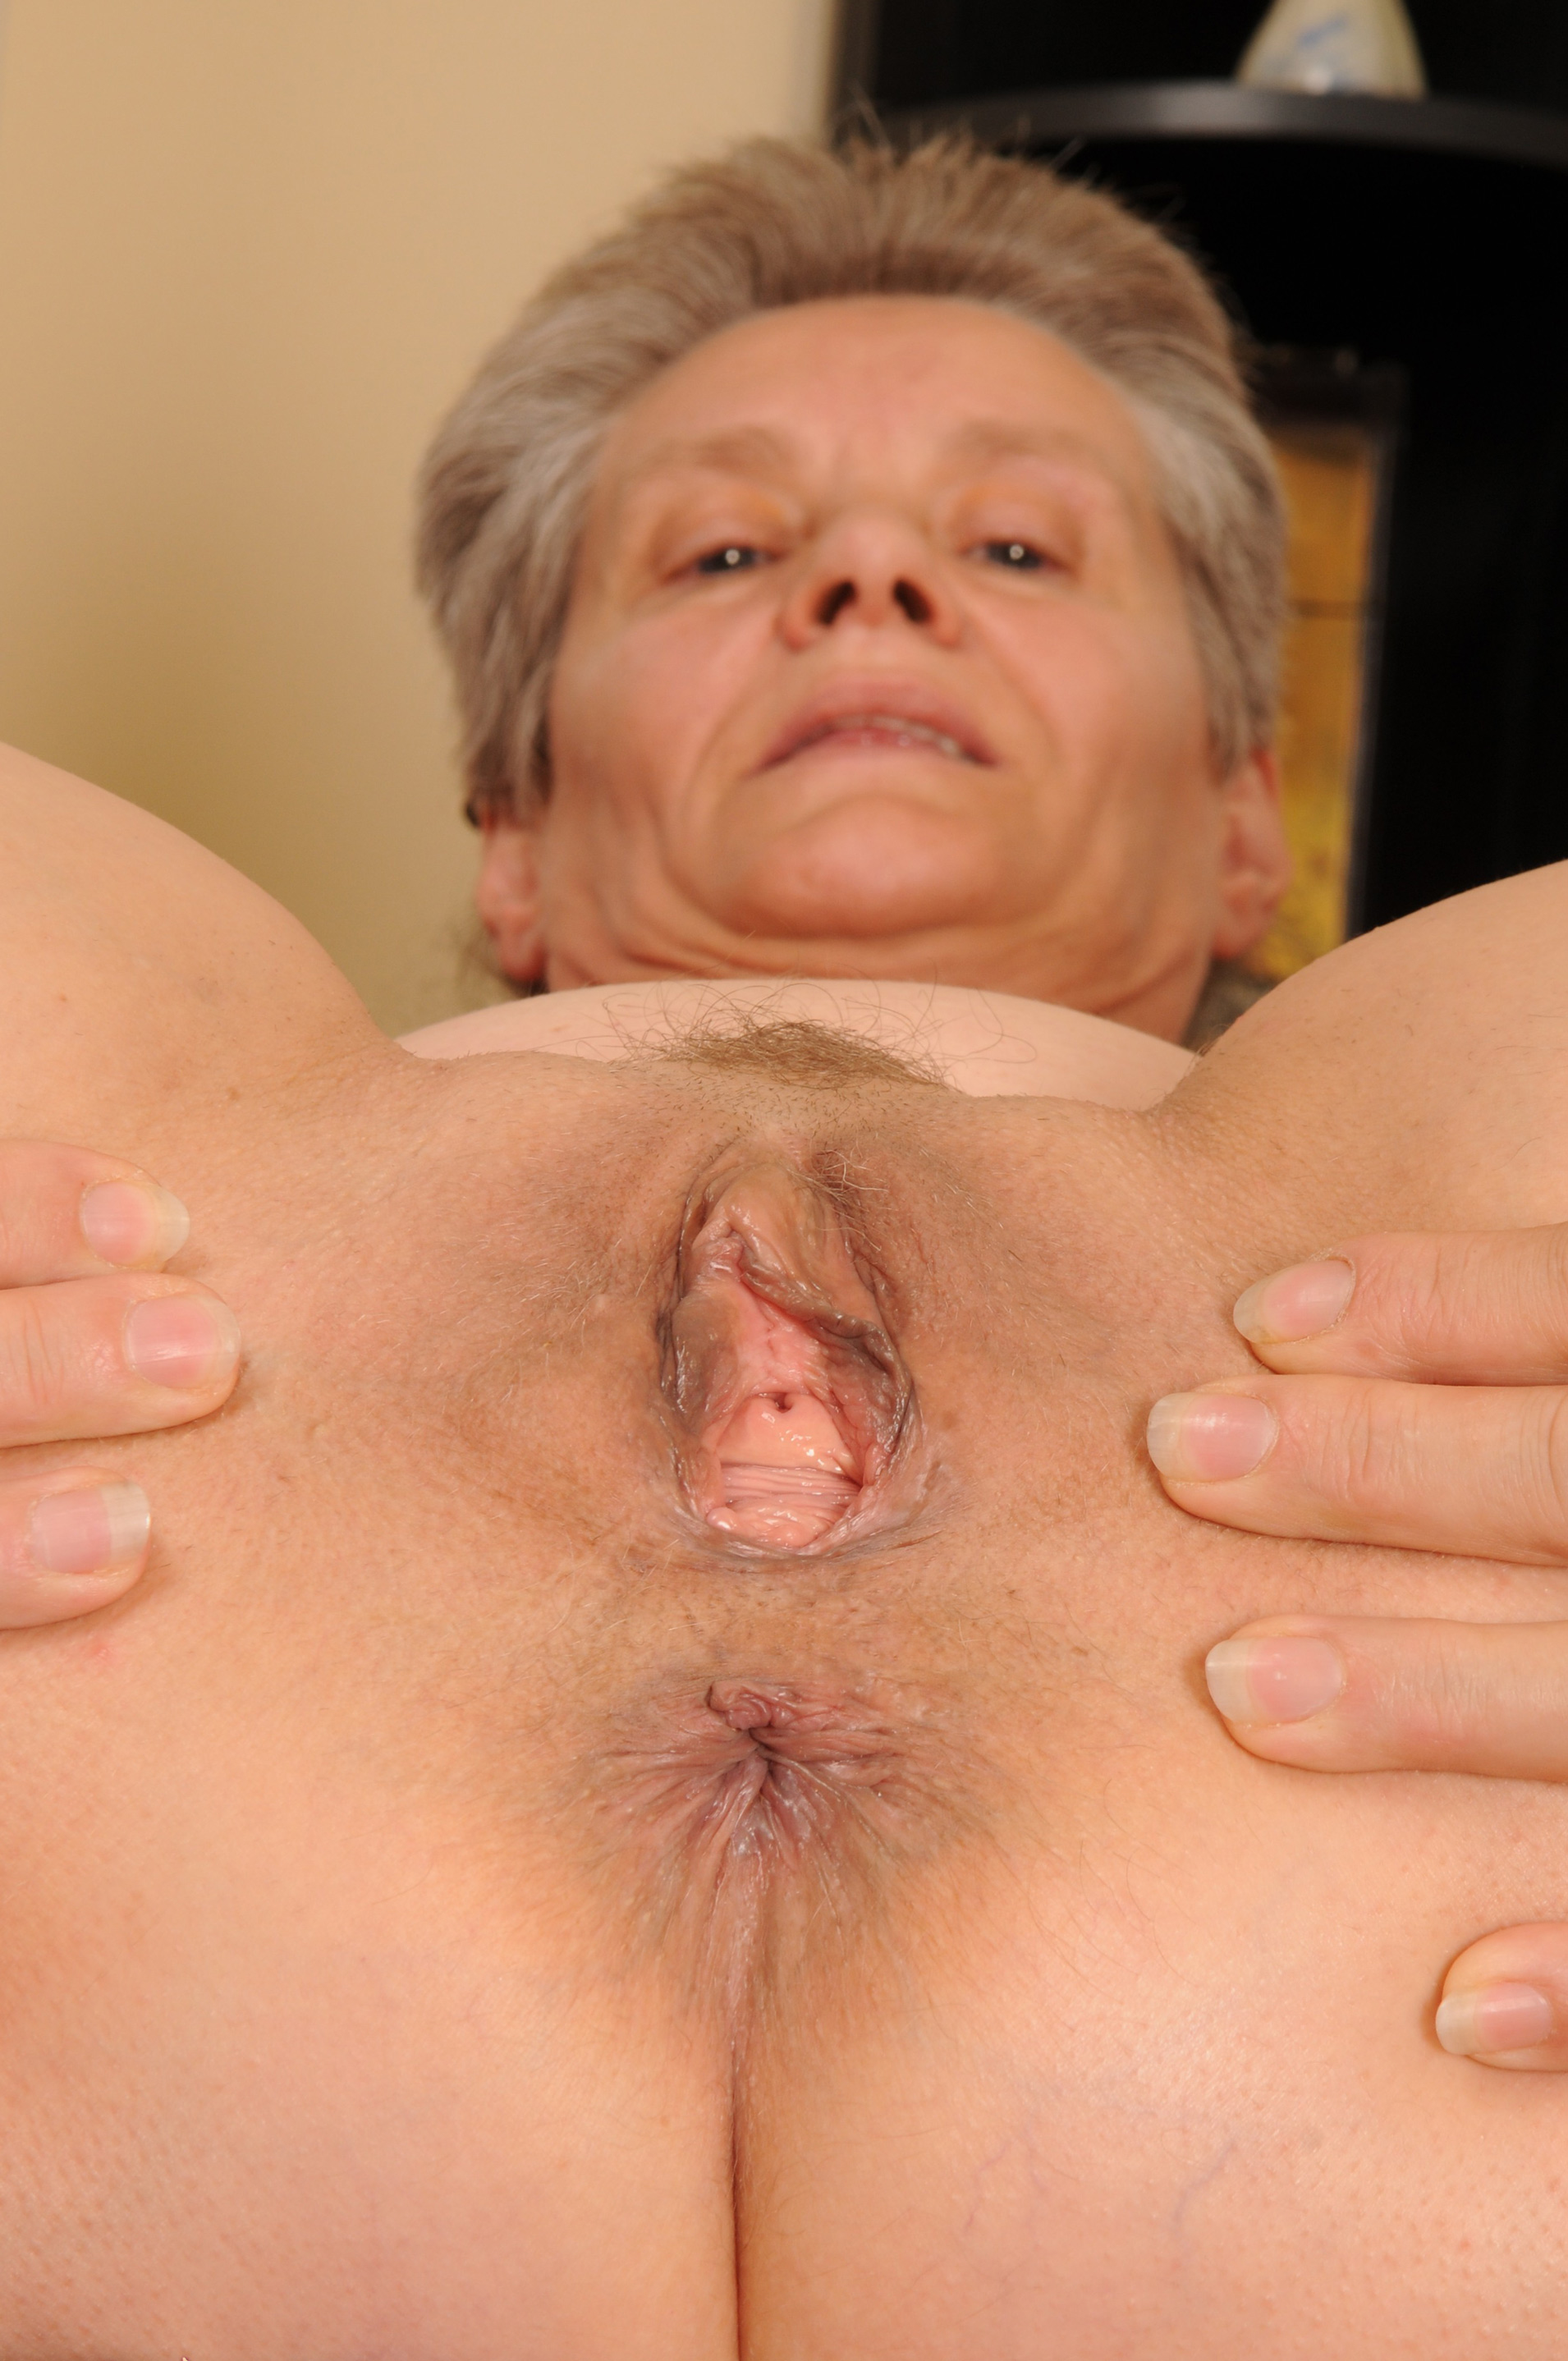 Granny onlinecam demonstrating my asshole closeup and delicately dipping